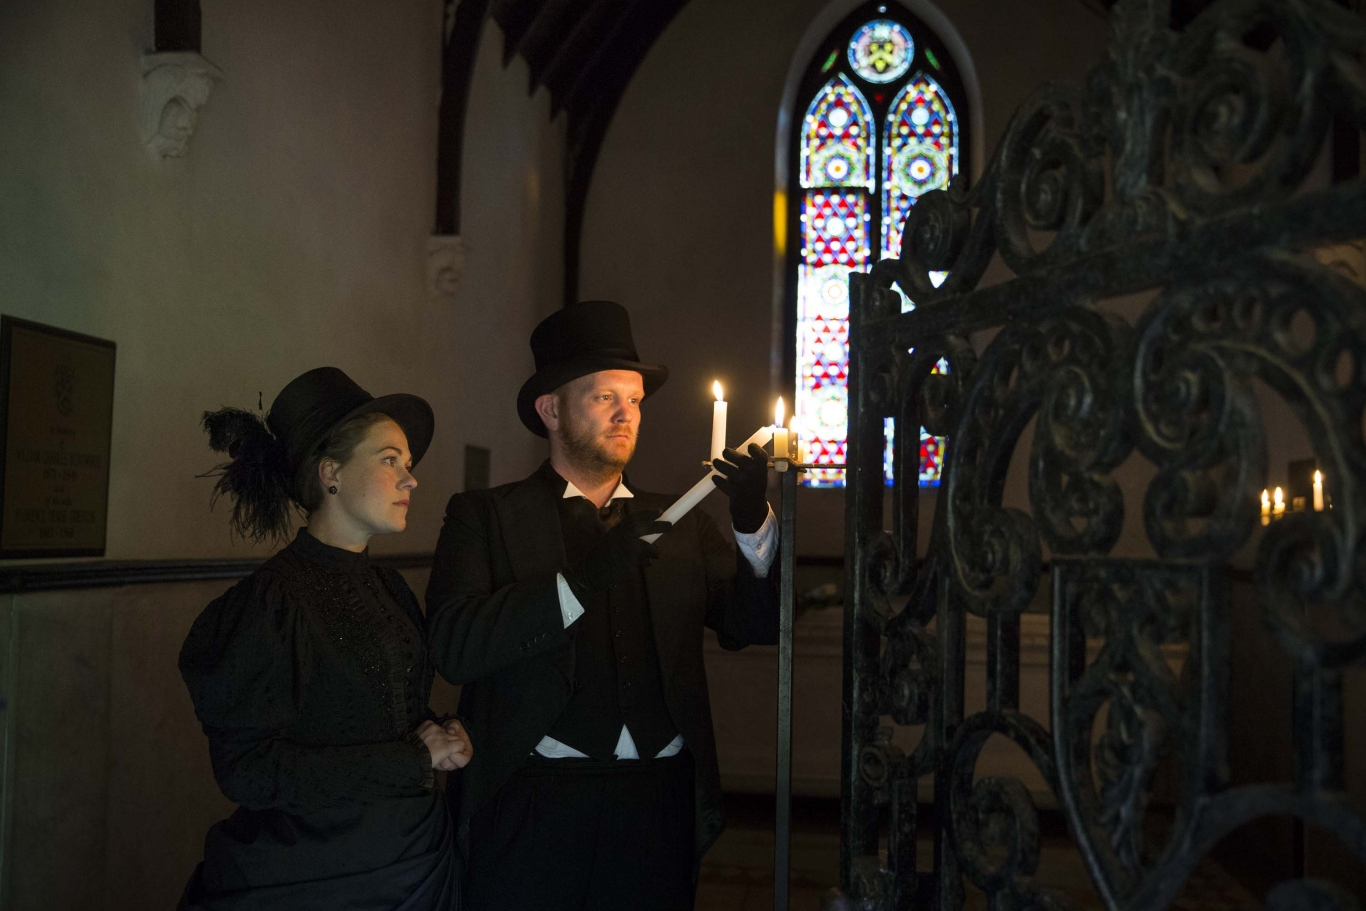 Colour image of a man and woman lighting candles inside the sandstone mausoleum. A they are backlit by a stained glass window.